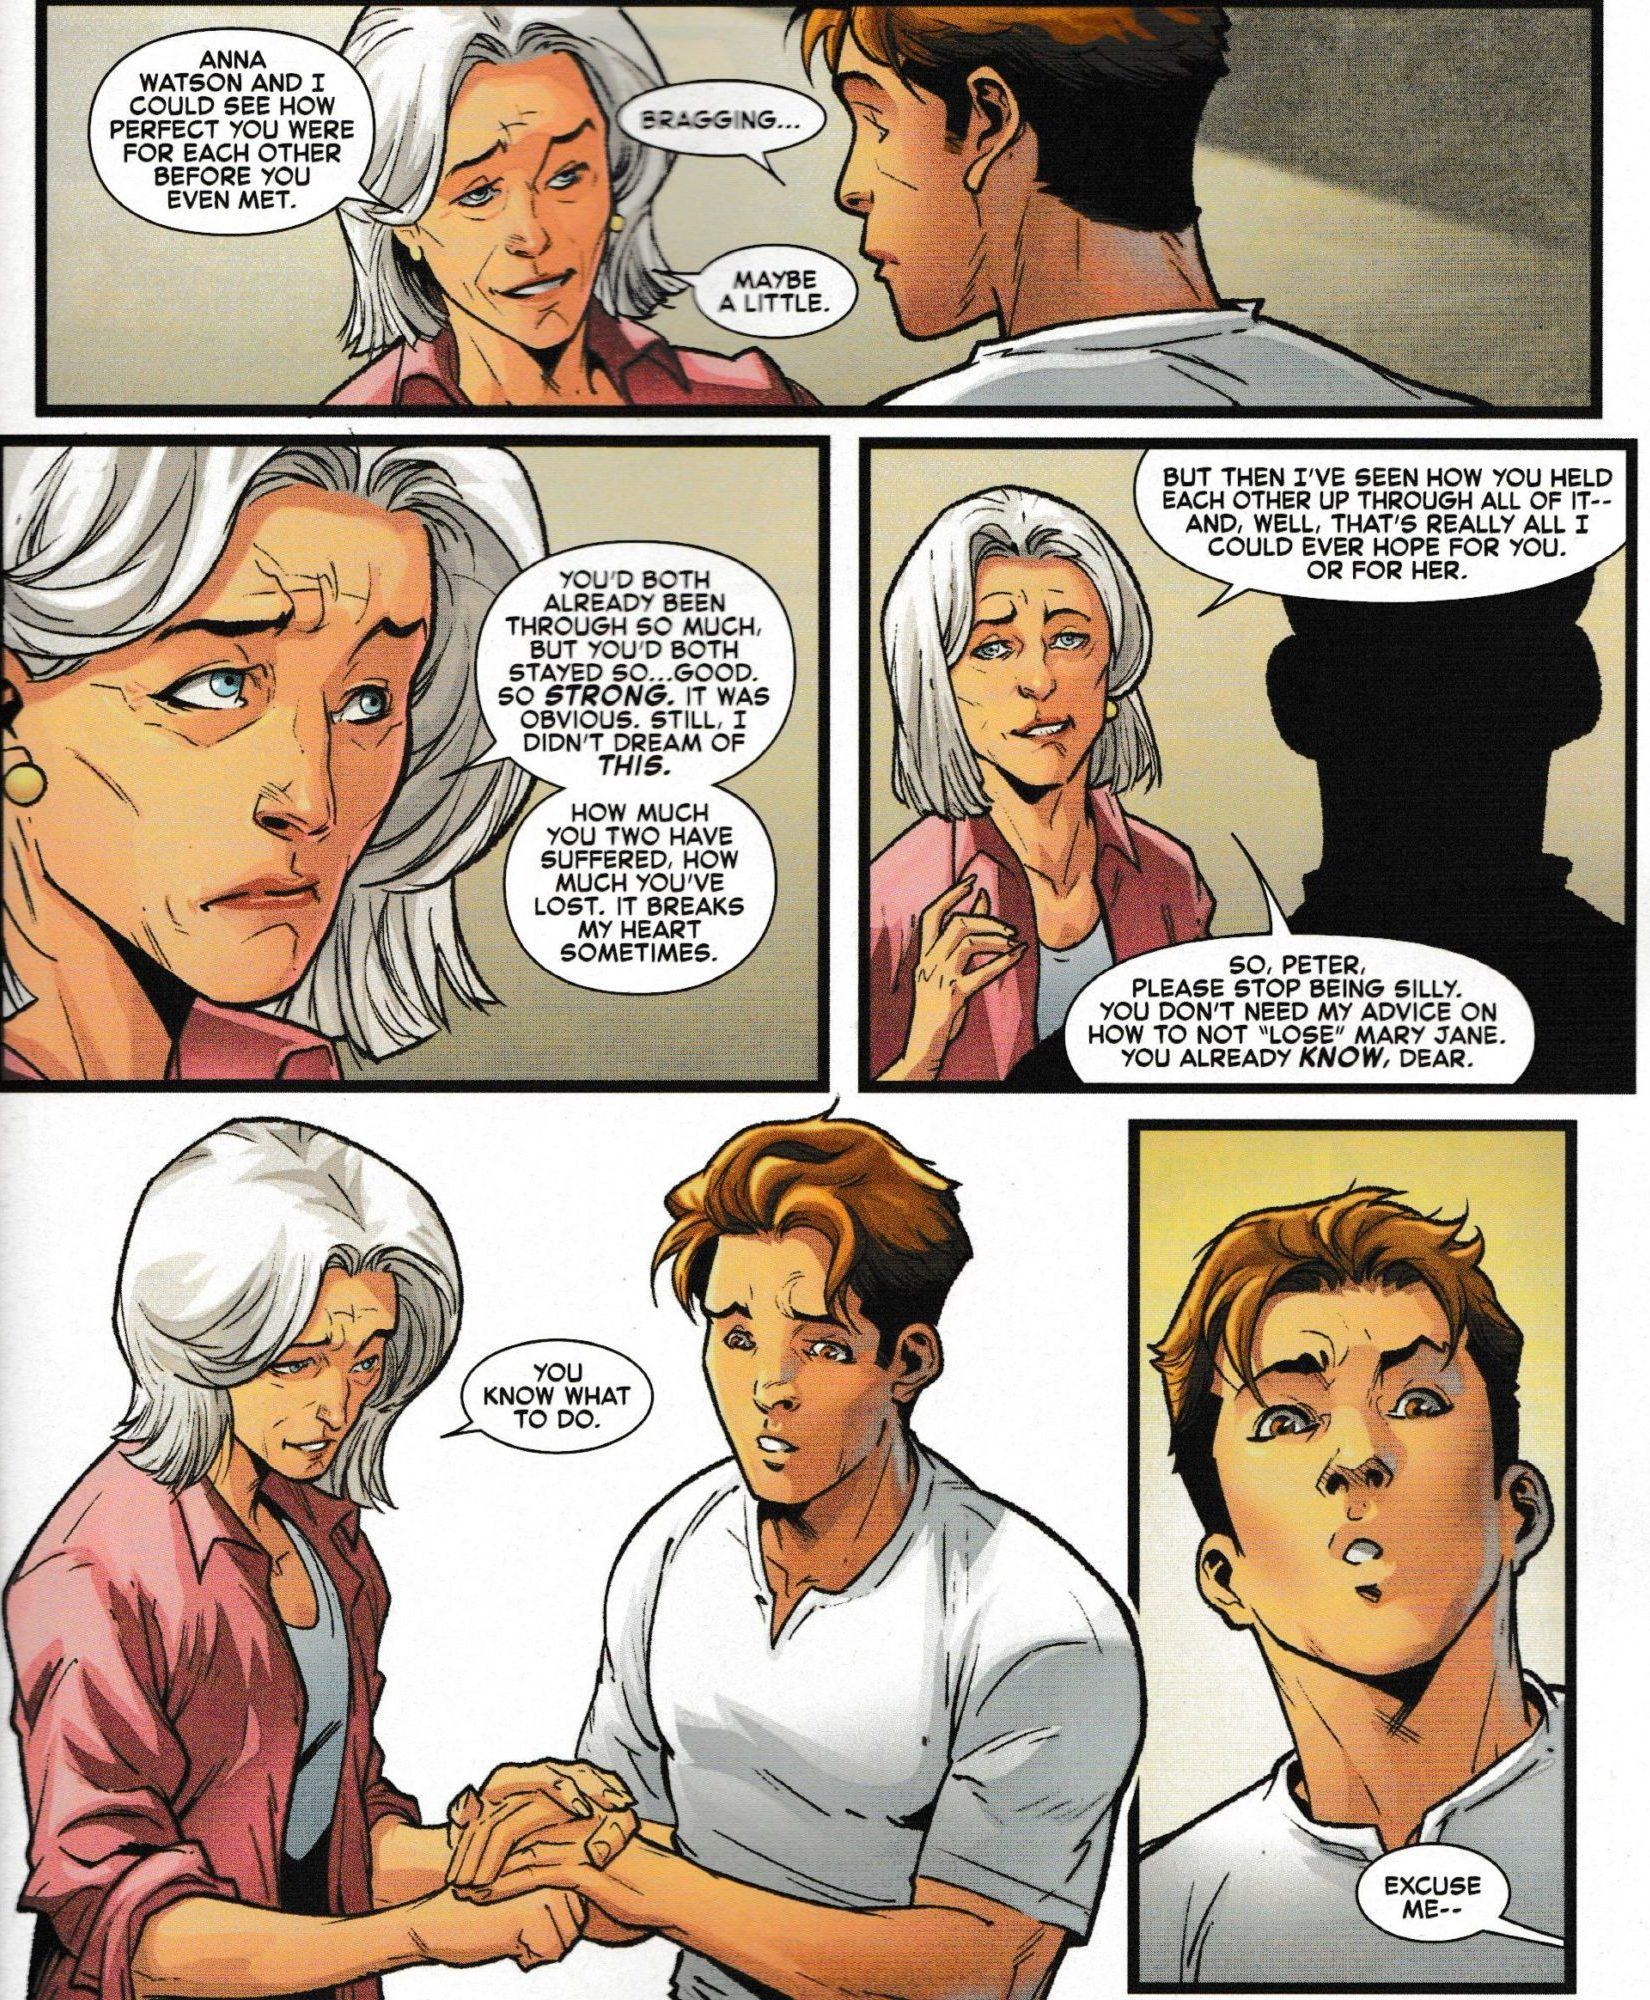 A Return to One More Day in Amazing Spider-Man #29 (Spoilers)